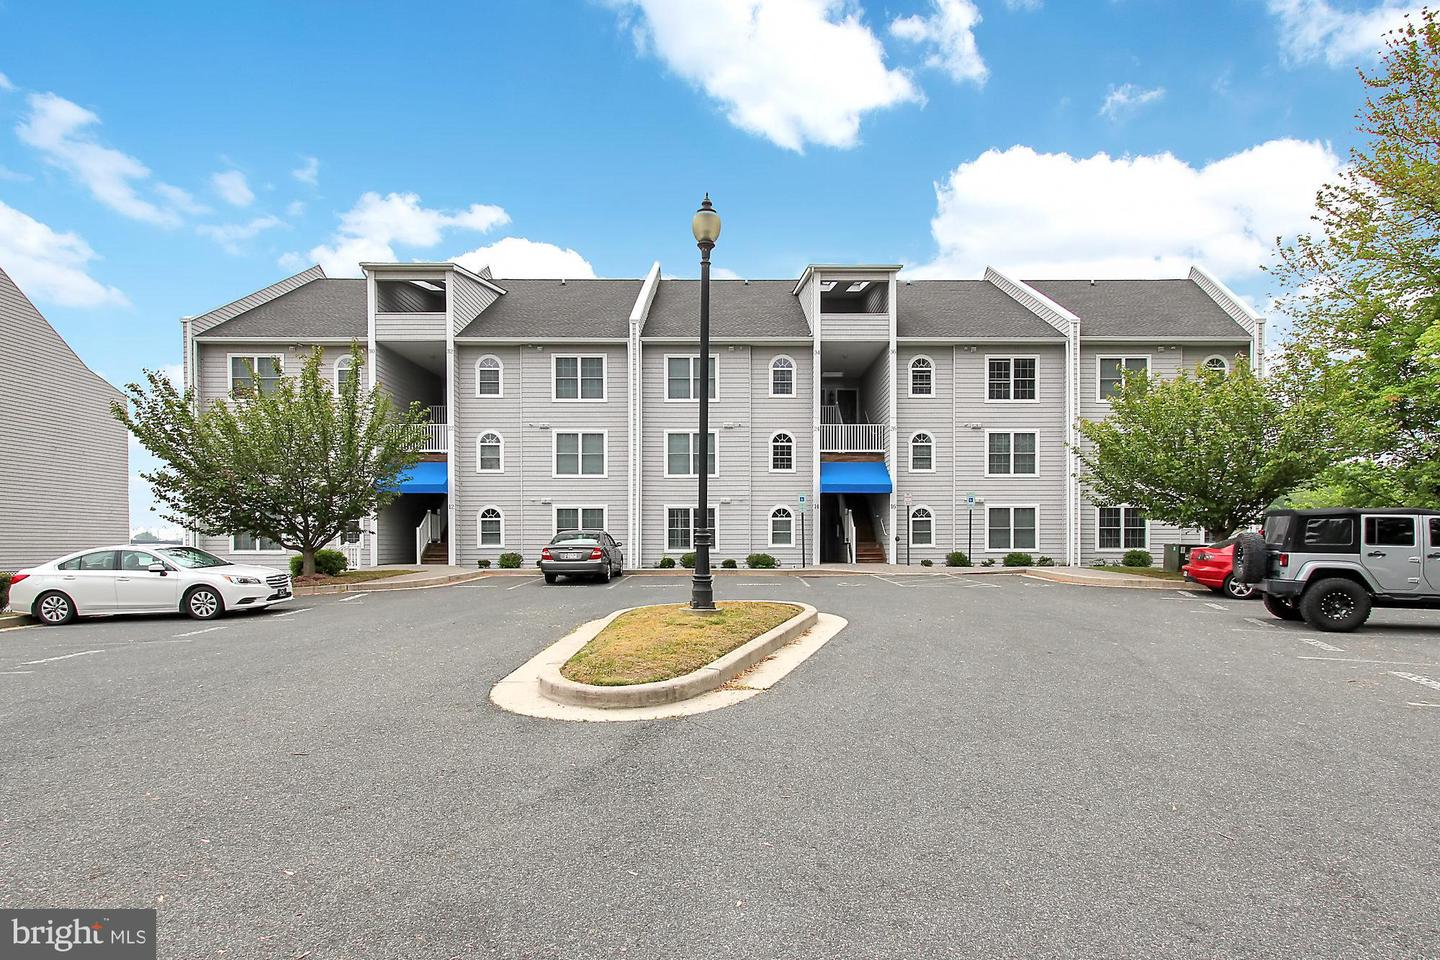 condominiums for Sale at 34 Mcmullens Wharf #3c 34 Mcmullens Wharf #3c Perryville, Maryland 21903 United States